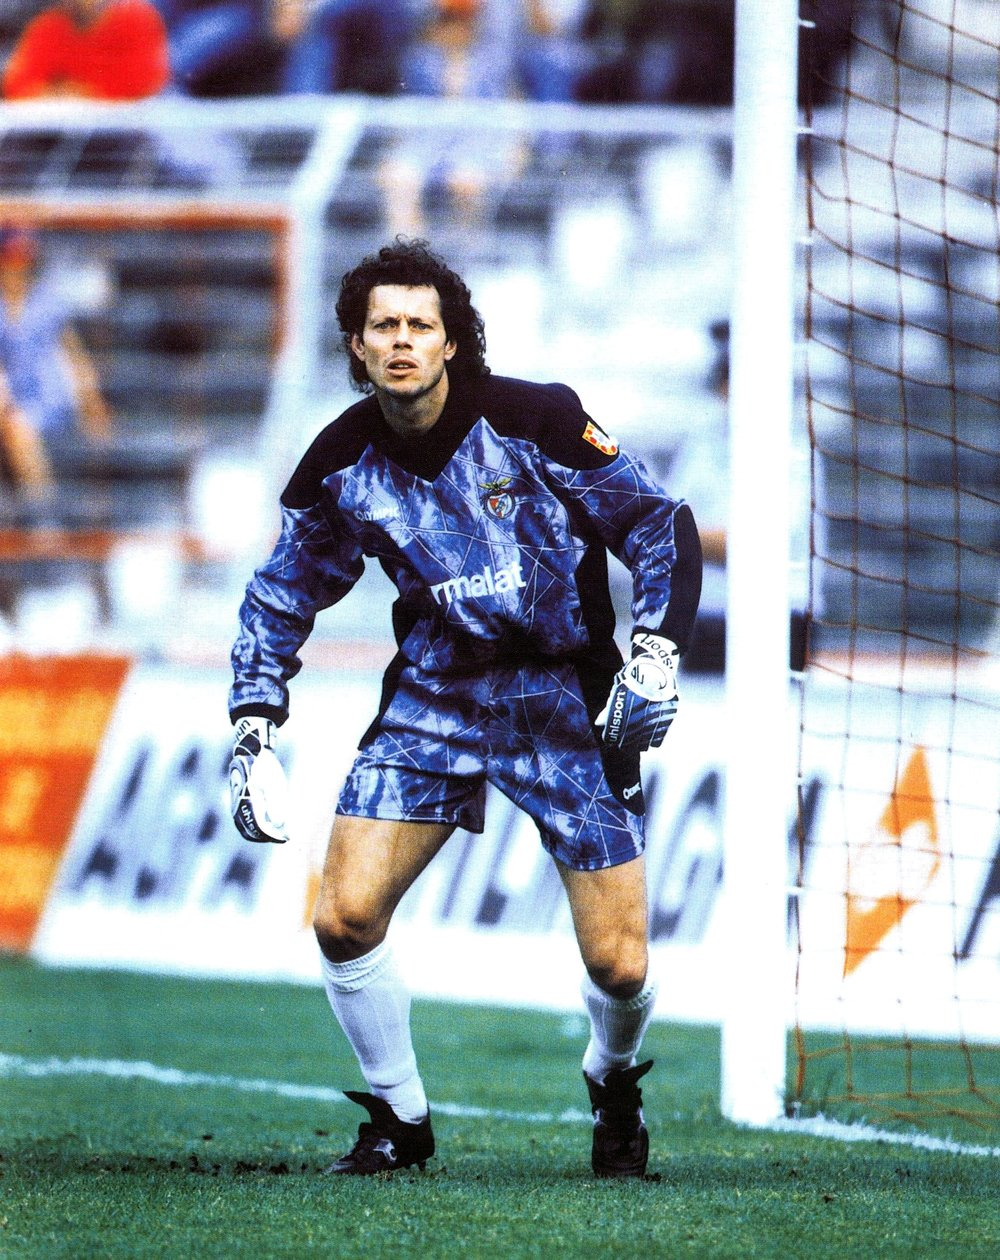 Michel Preud'homme, Belgium National Team goalkeeper 1979-1994